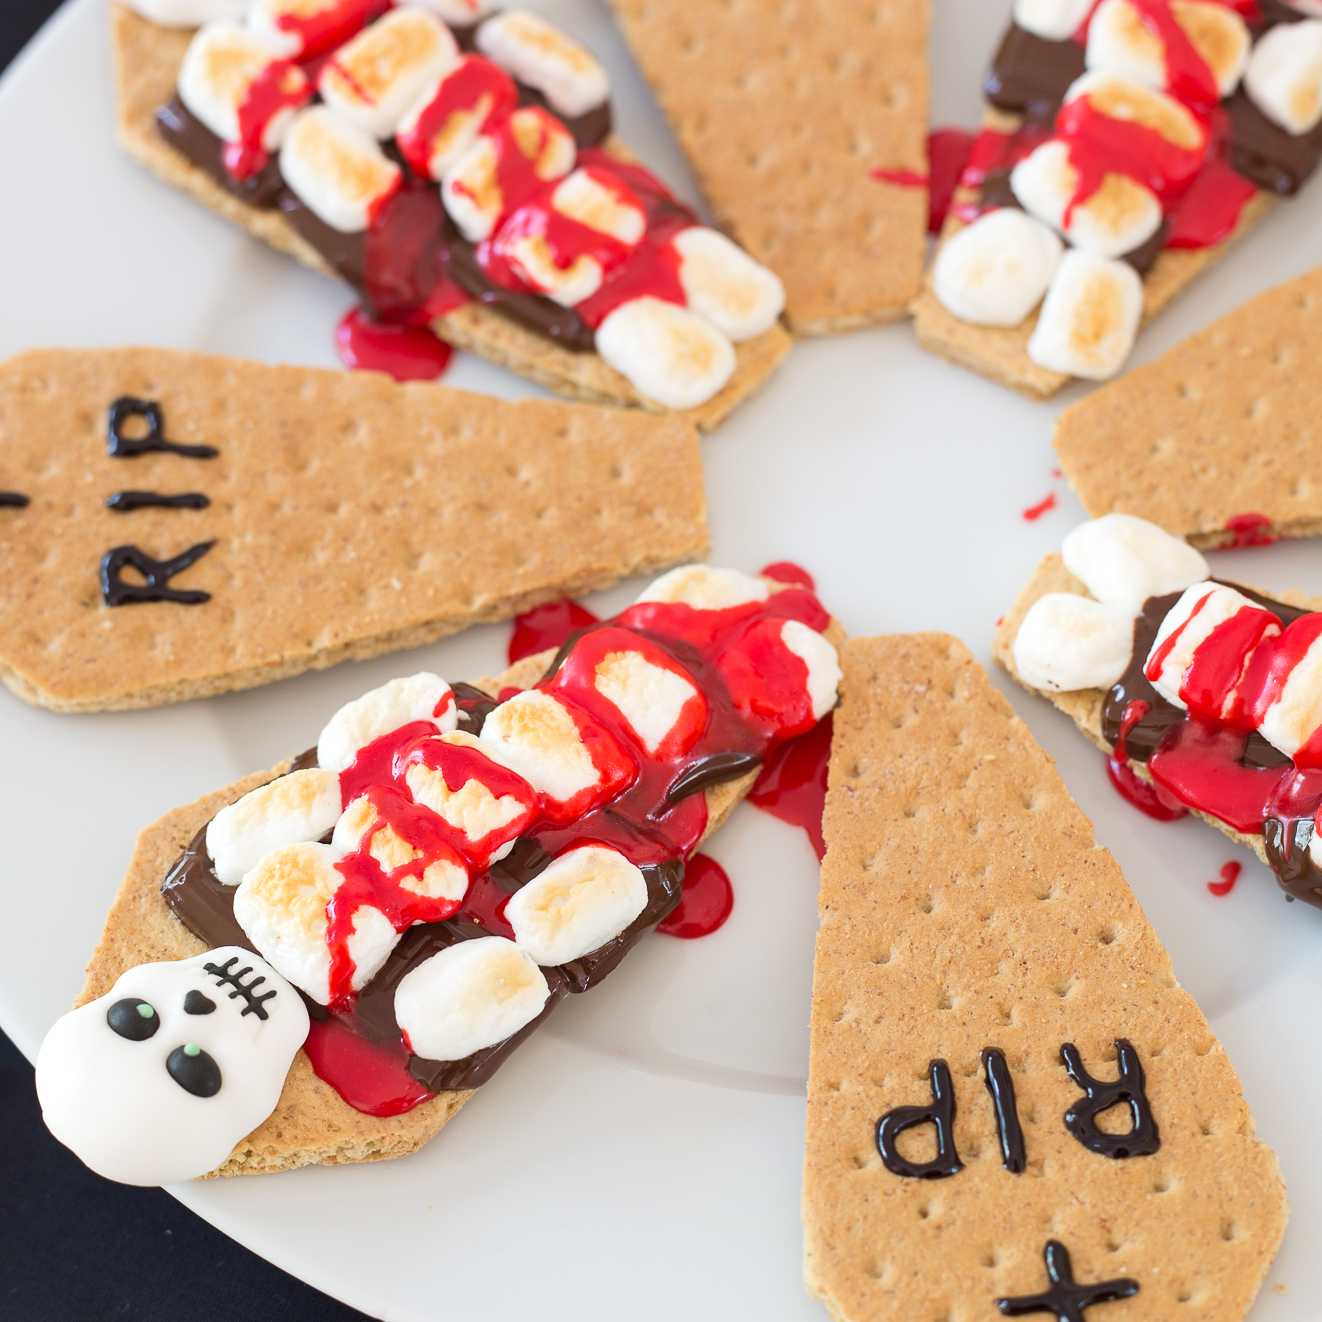 s'mores made to look like skeletons in coffins